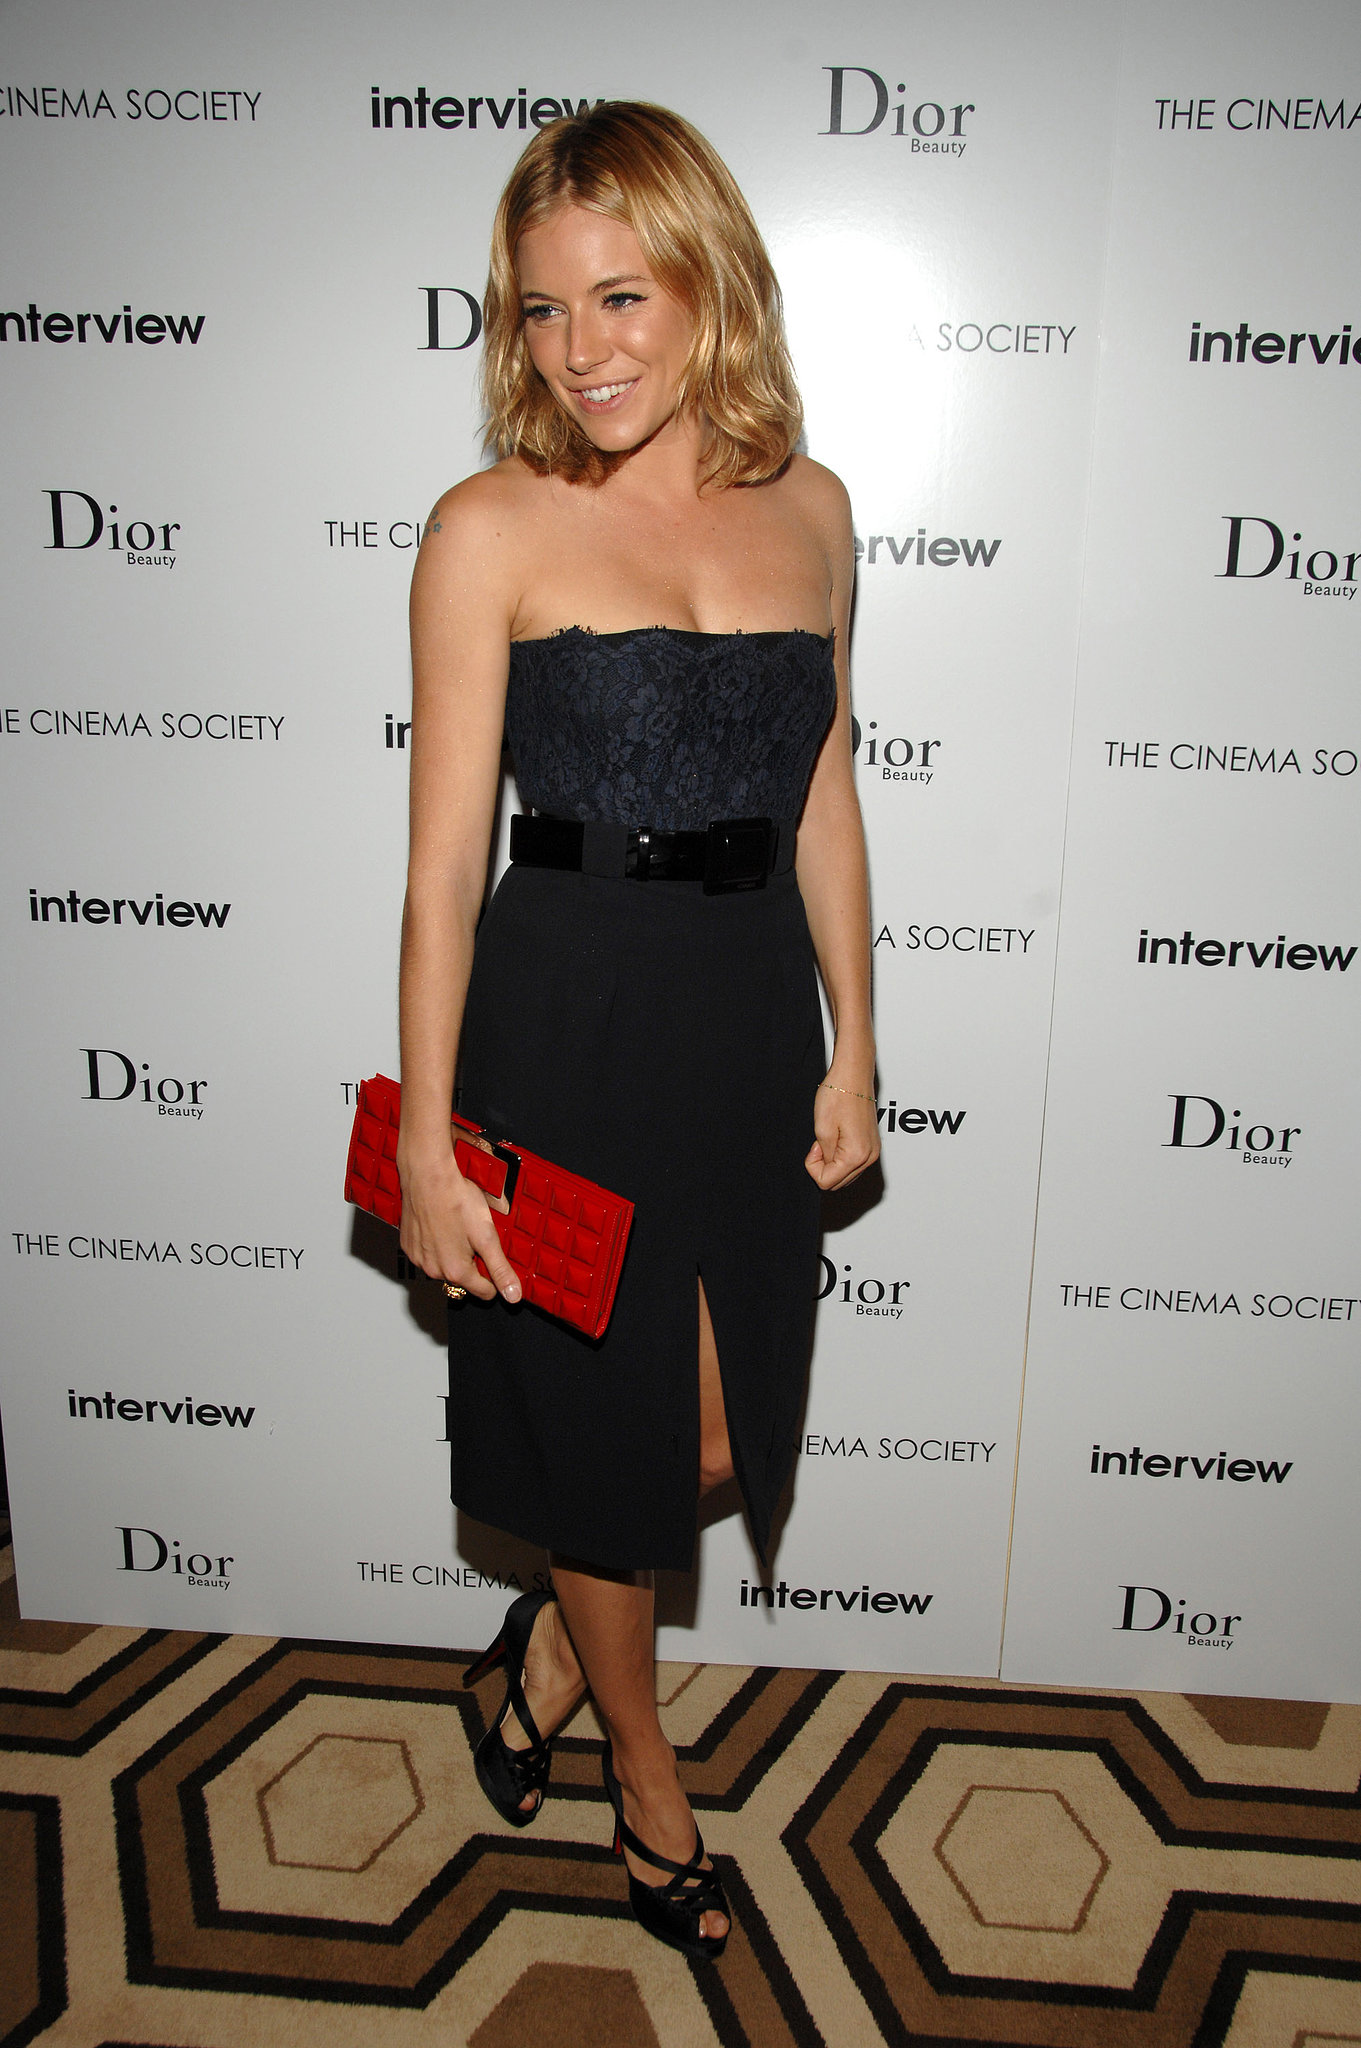 At a screening of Interview in 2007, Sienna wore a navy strapless dress with a pop of color via her vibrant textured clutch.